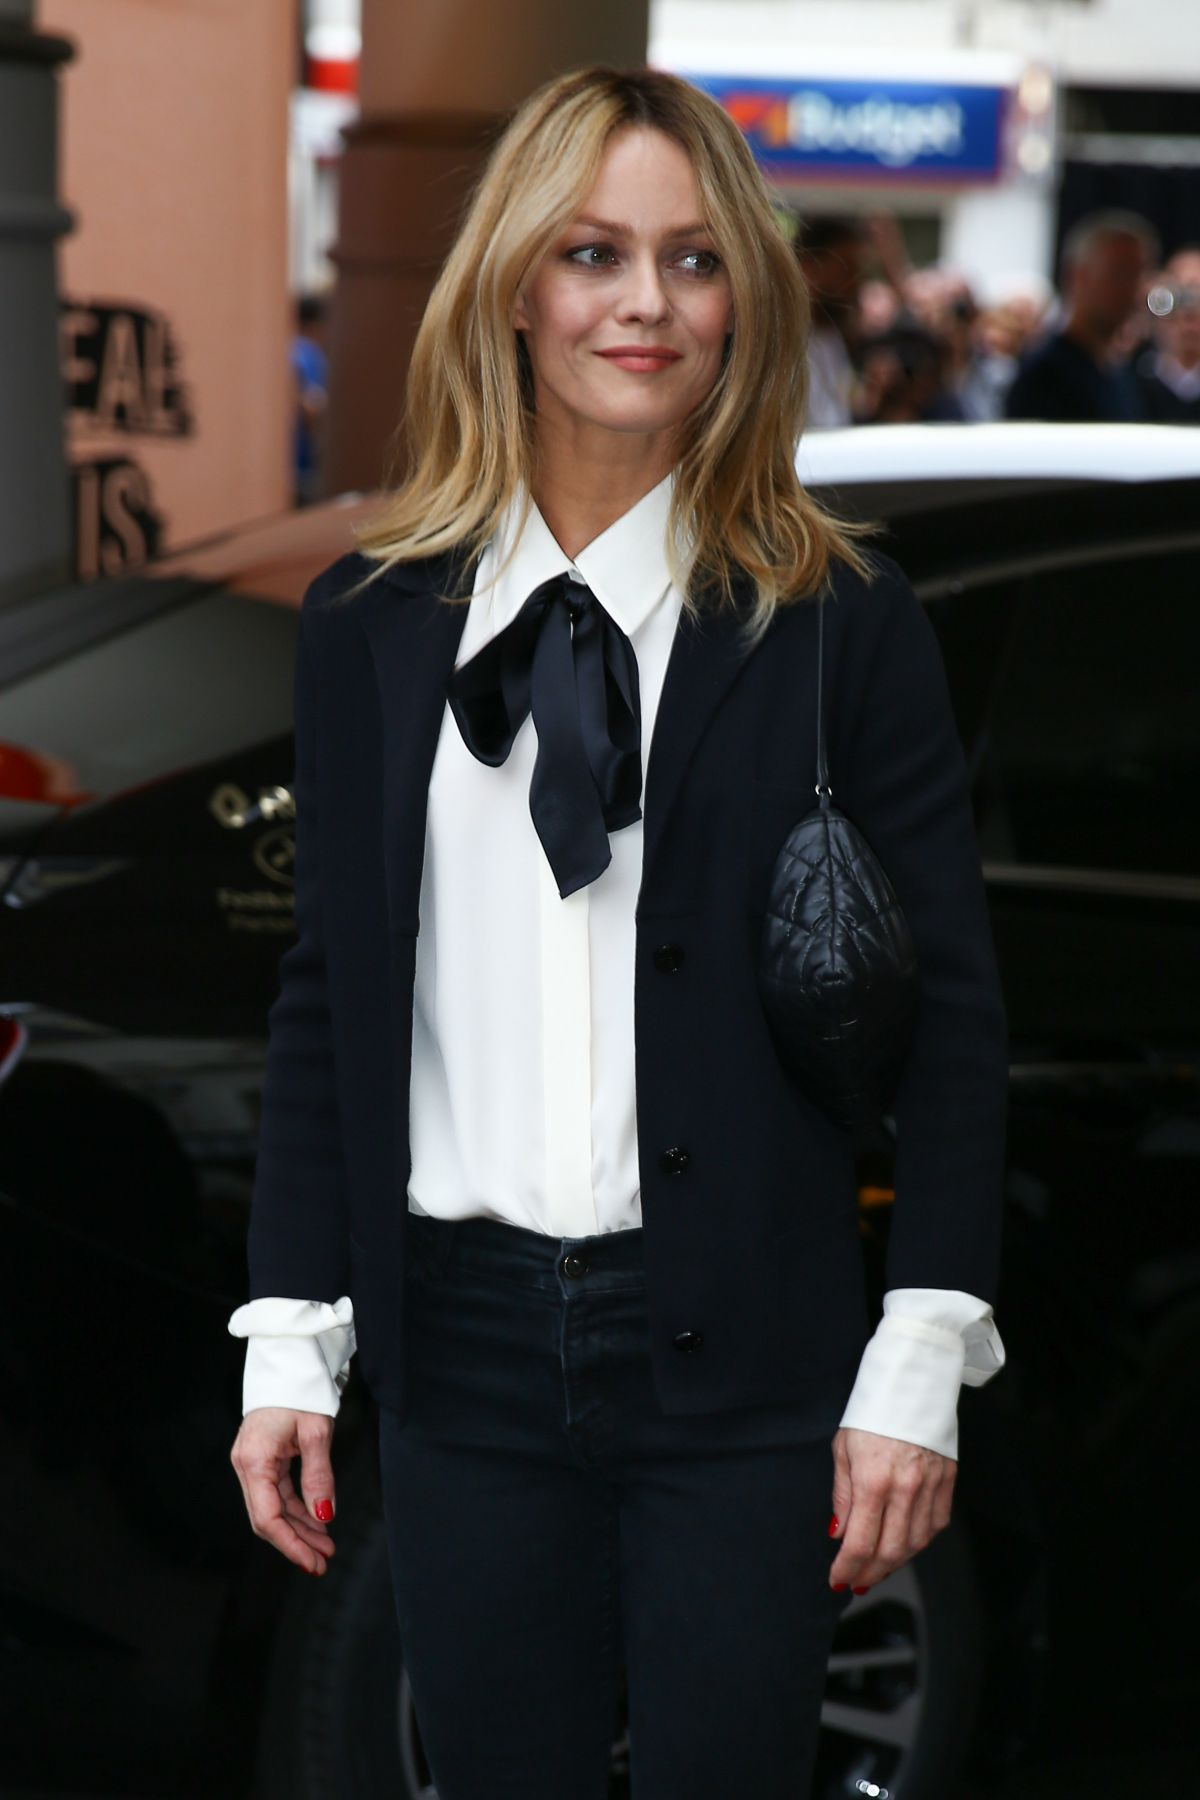 VANESSA PARADIS Arrives at Hotel Martinez in Cannes 0/510/2016